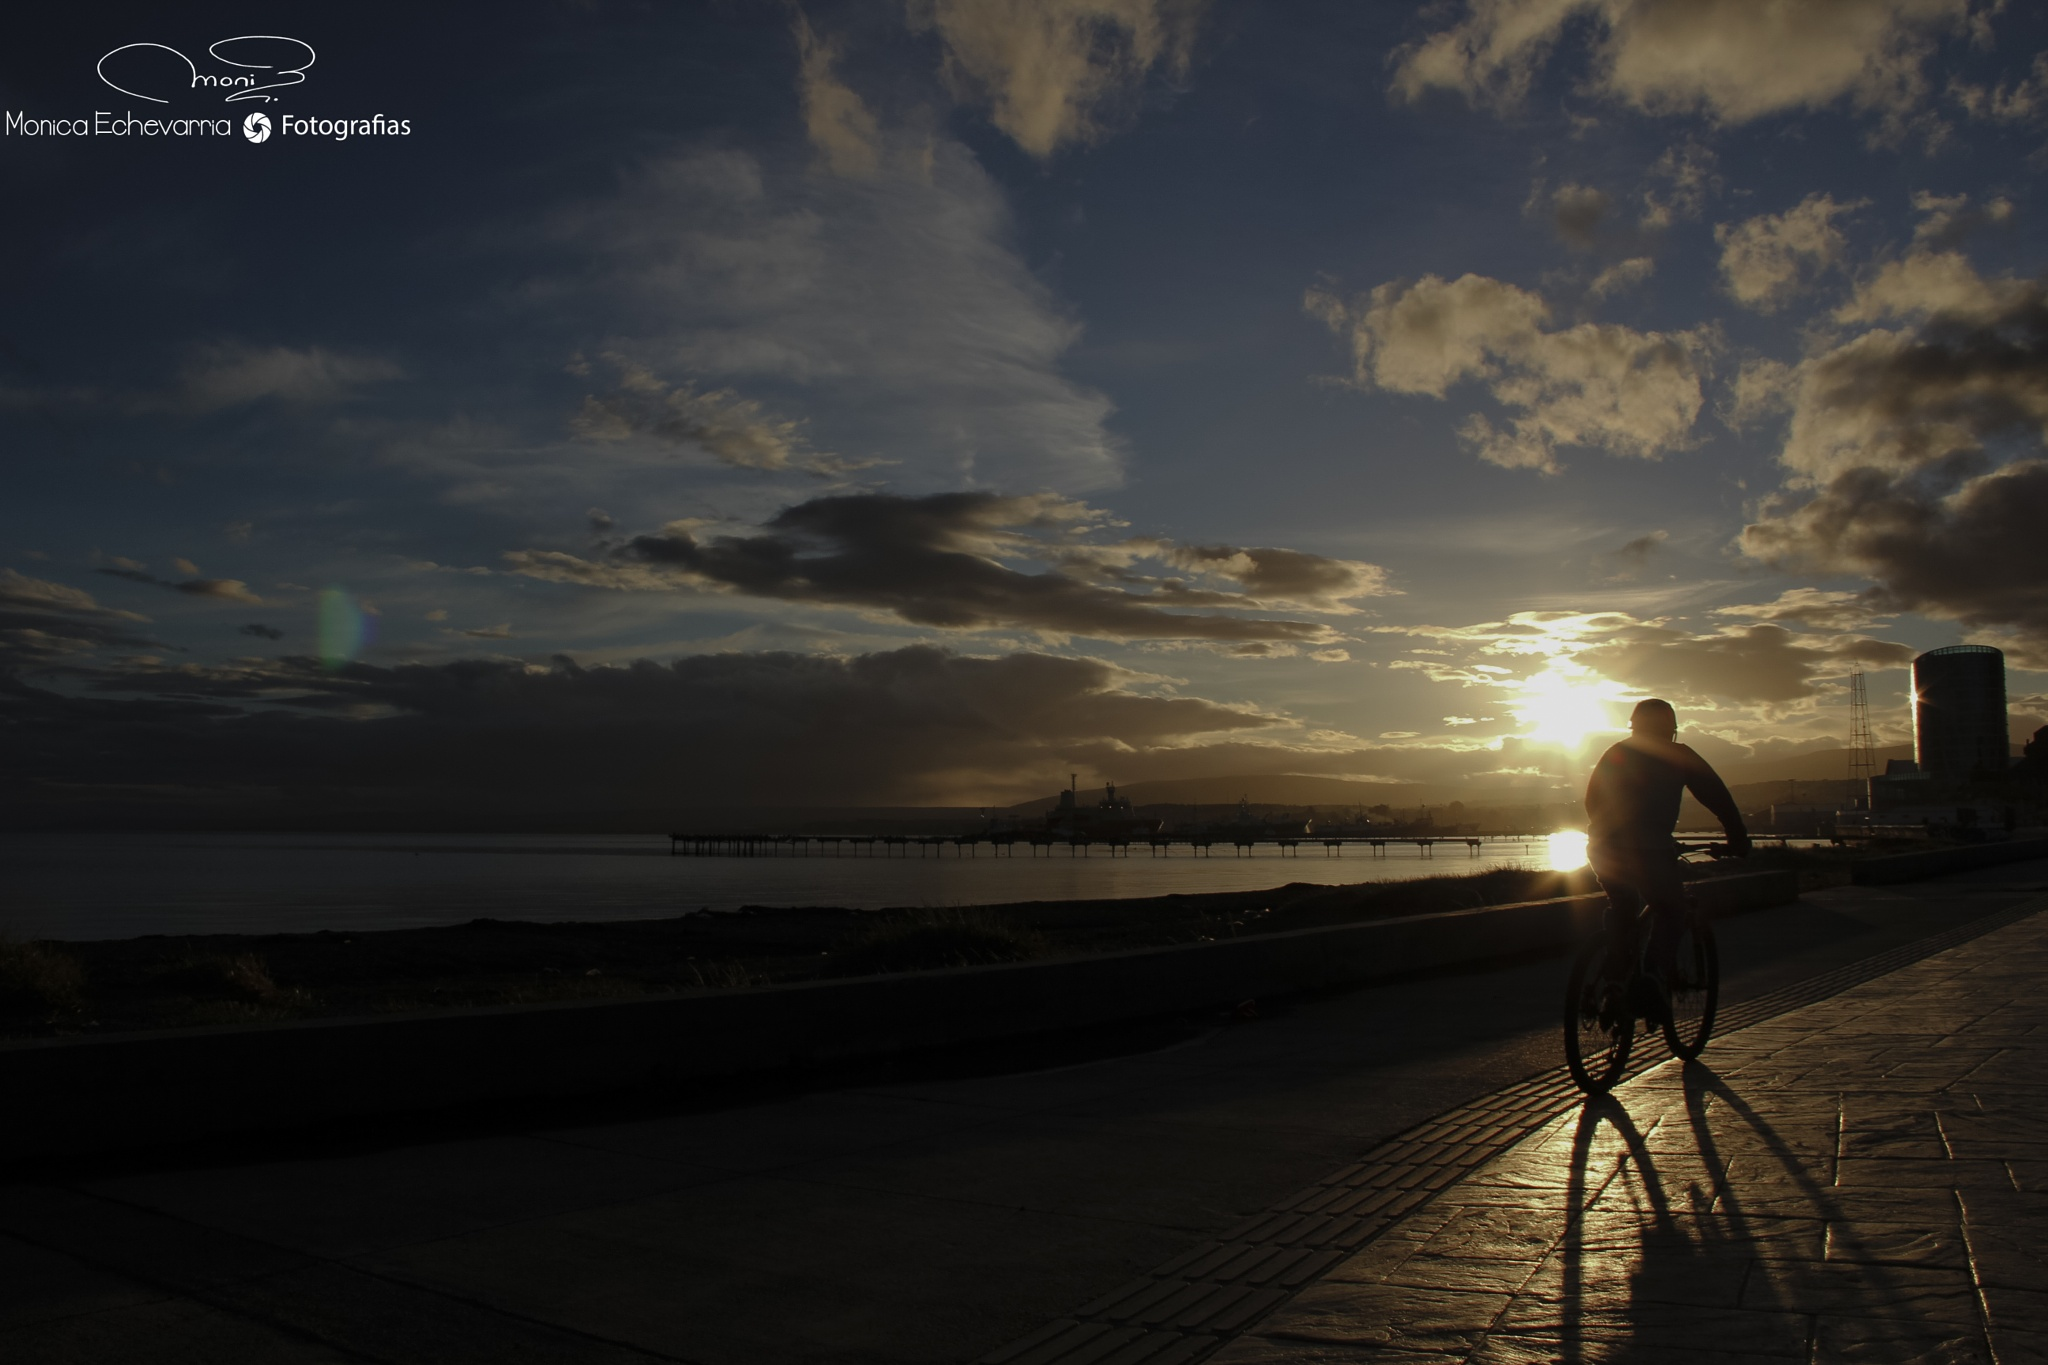 Cyclist and sunset by Monica Echevarria